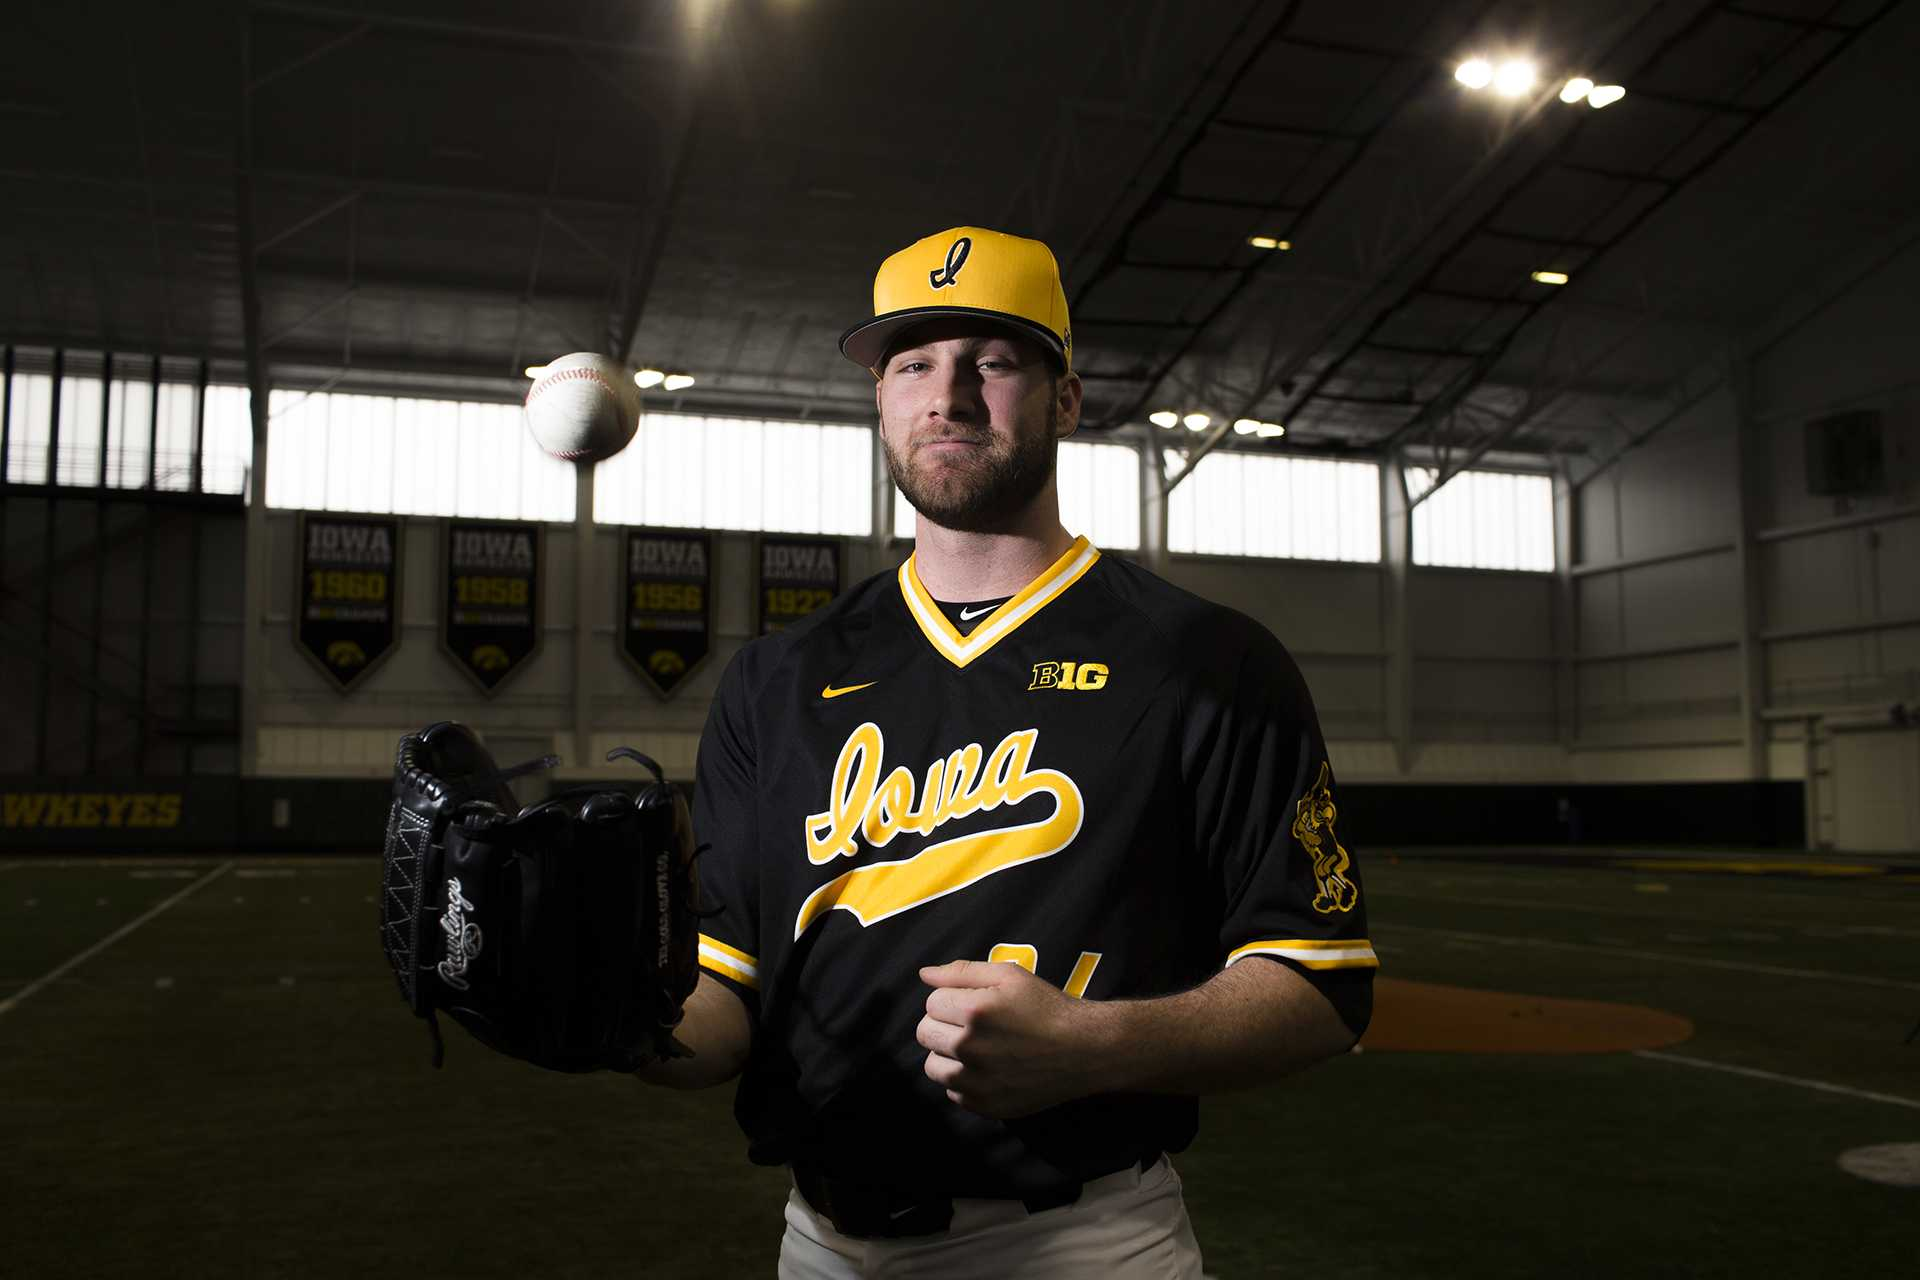 Iowa pitcher Nick Allgeyer poses for a portrait during baseball media day at the Hansen Football Performance Center on Thursday, Feb. 8, 2018. The Hawkeyes begin their season Feb. 16 against Toledo in the Diamond 9 Sunshine State Classic Series in Kissimmee, Fl. (Lily Smith/The Daily Iowan)